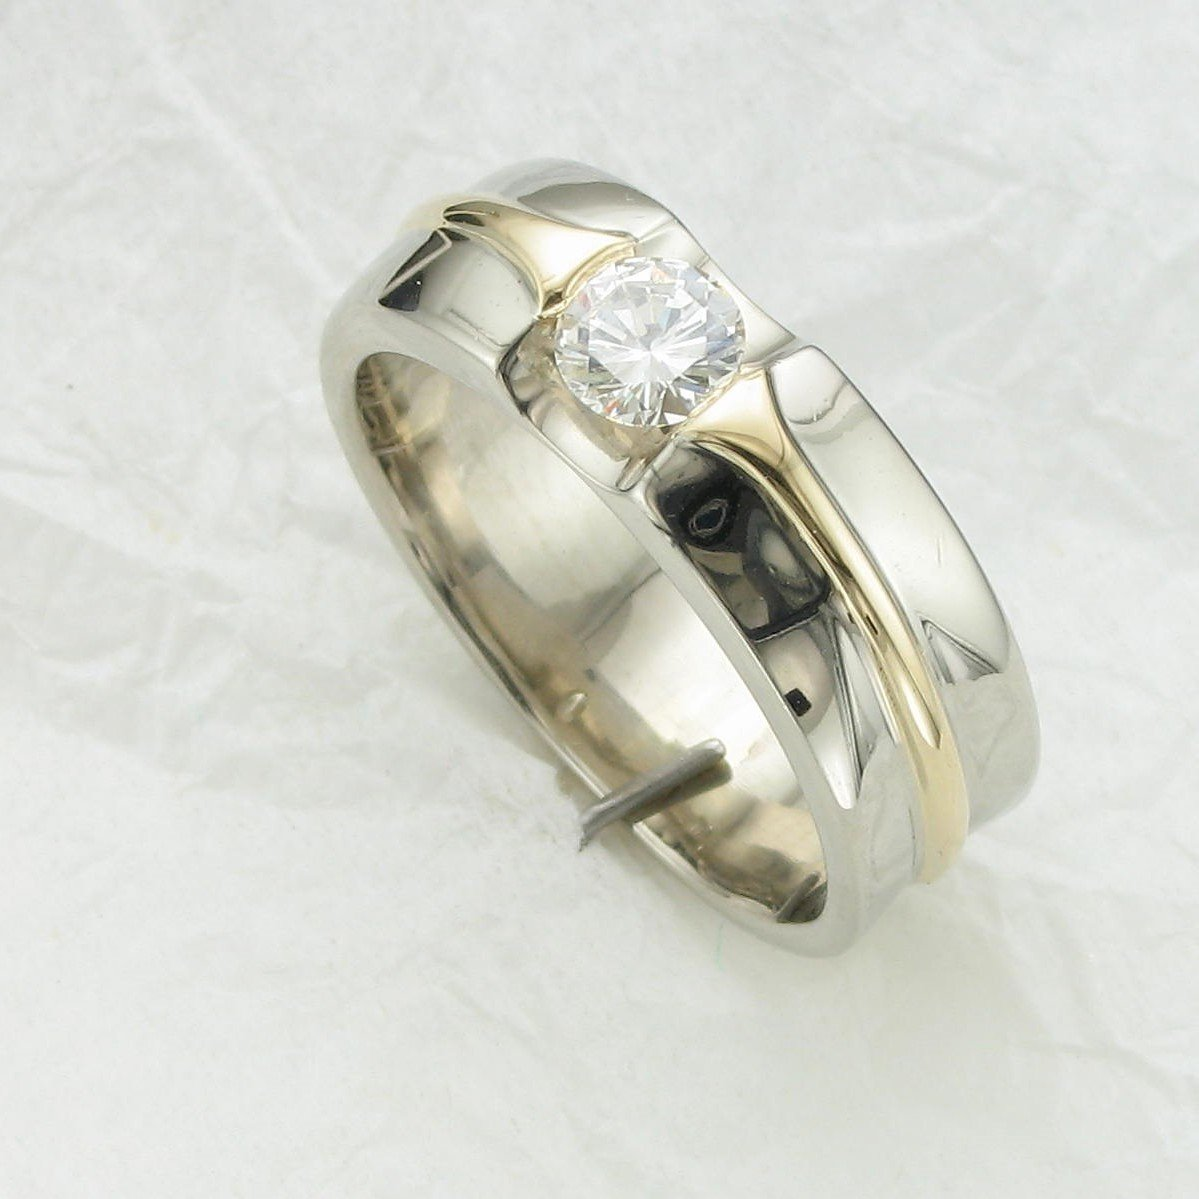 0.50CT Round Diamond Ring set in 14K Yellow and White Gold